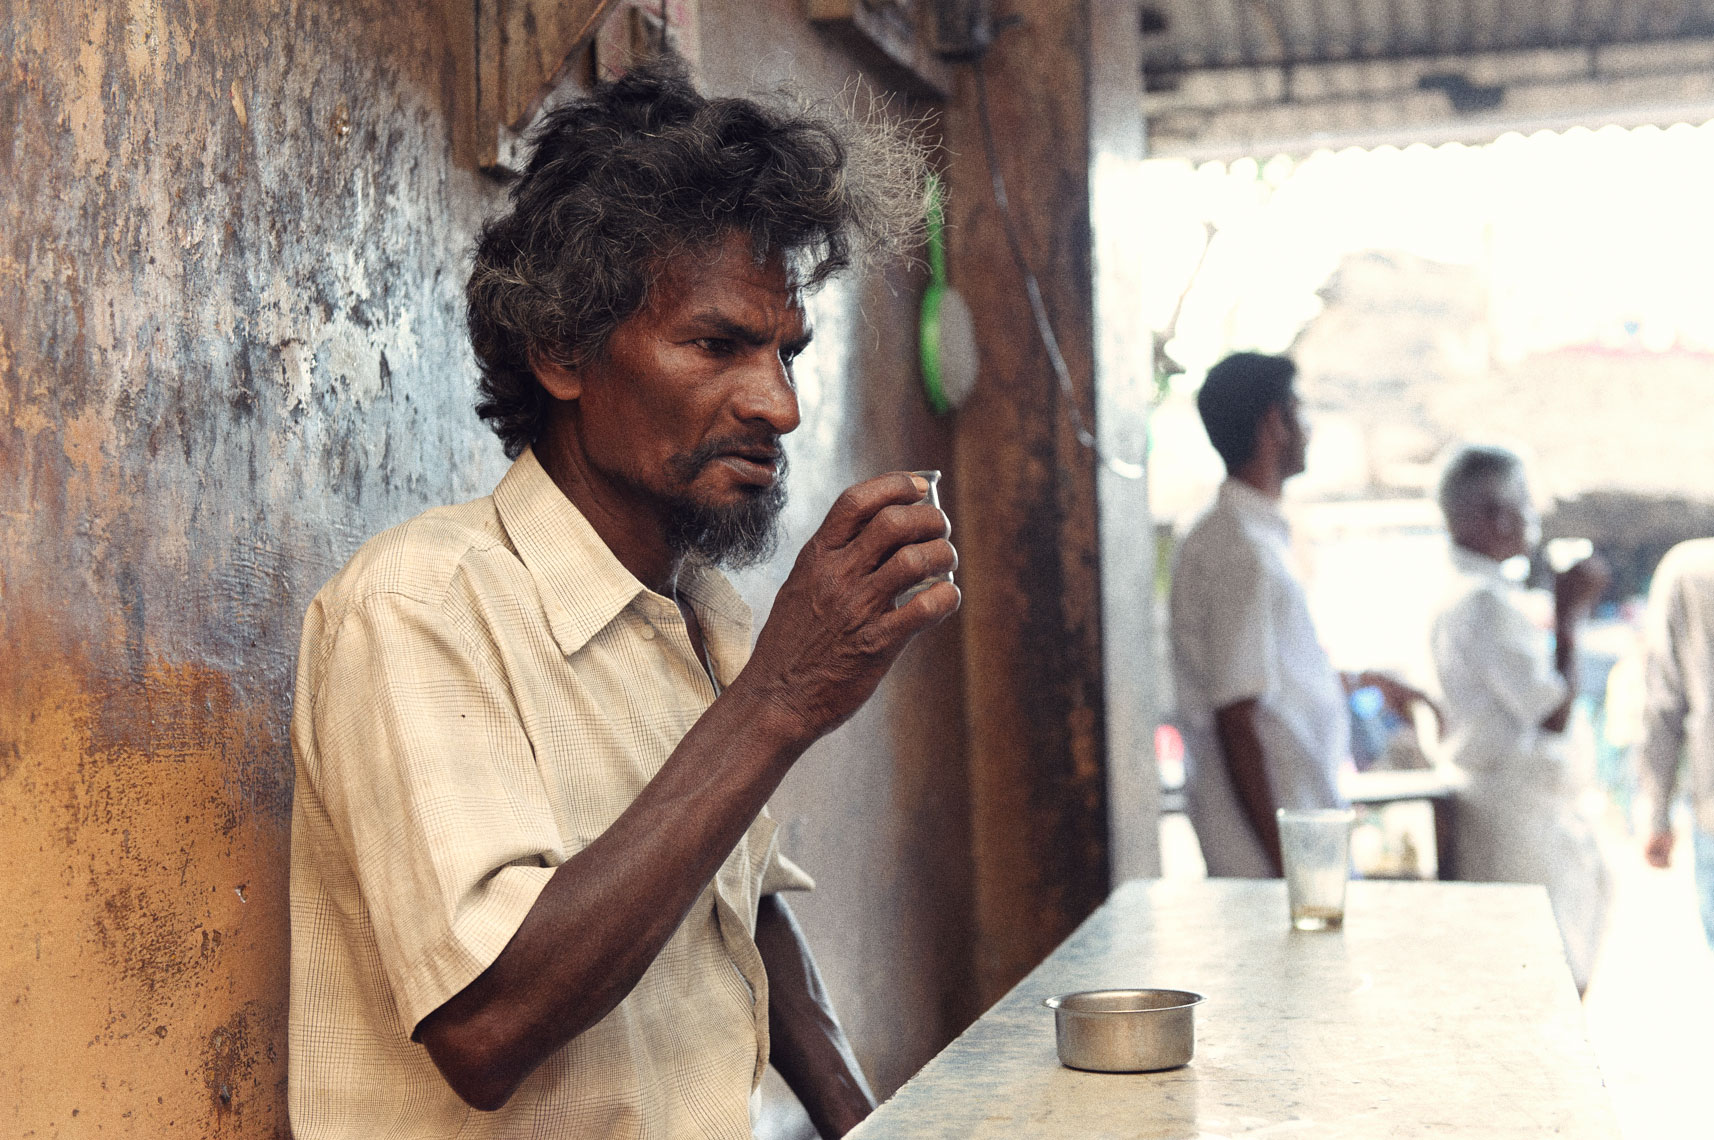 Lunch break at the tea shop, India.